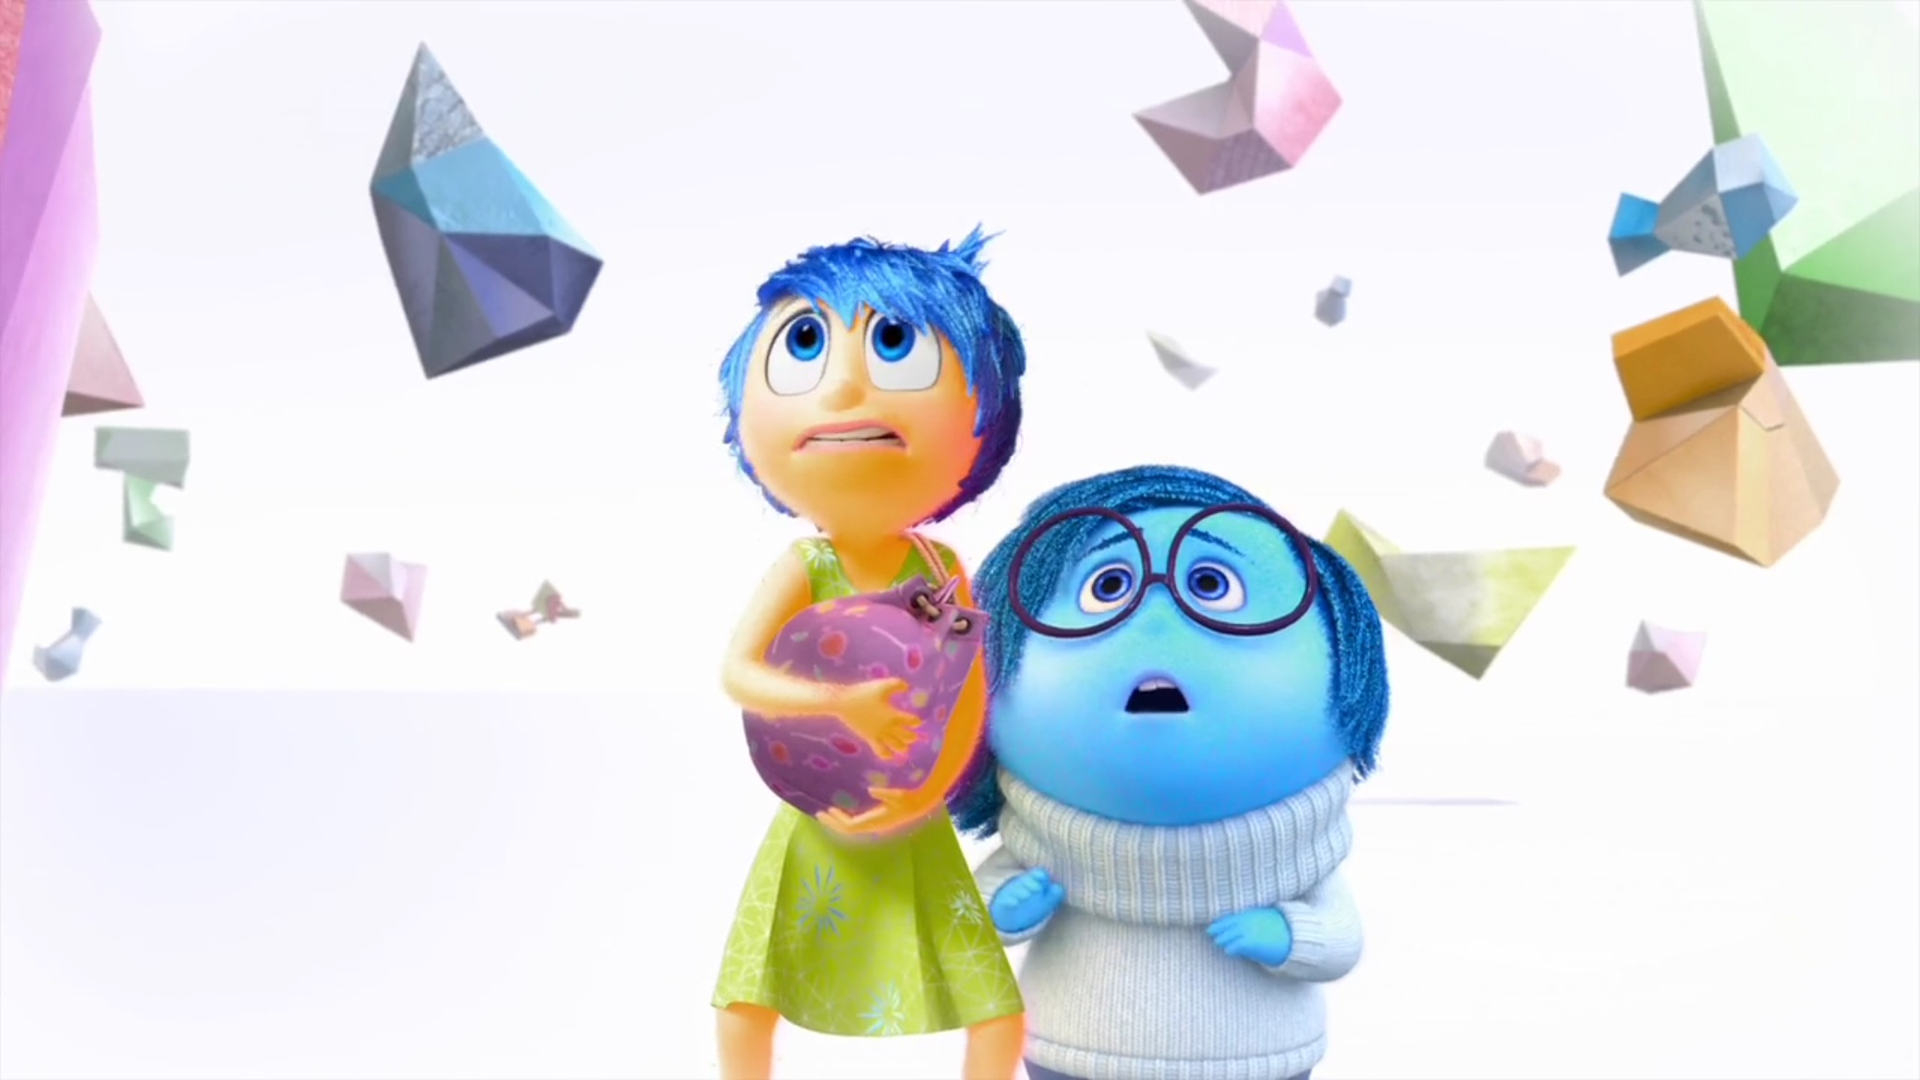 Image   Inside Out Abstractthought Trailer.png | Pixar Wiki | Fandom Powered By Wikia - Inside Out, Transparent background PNG HD thumbnail